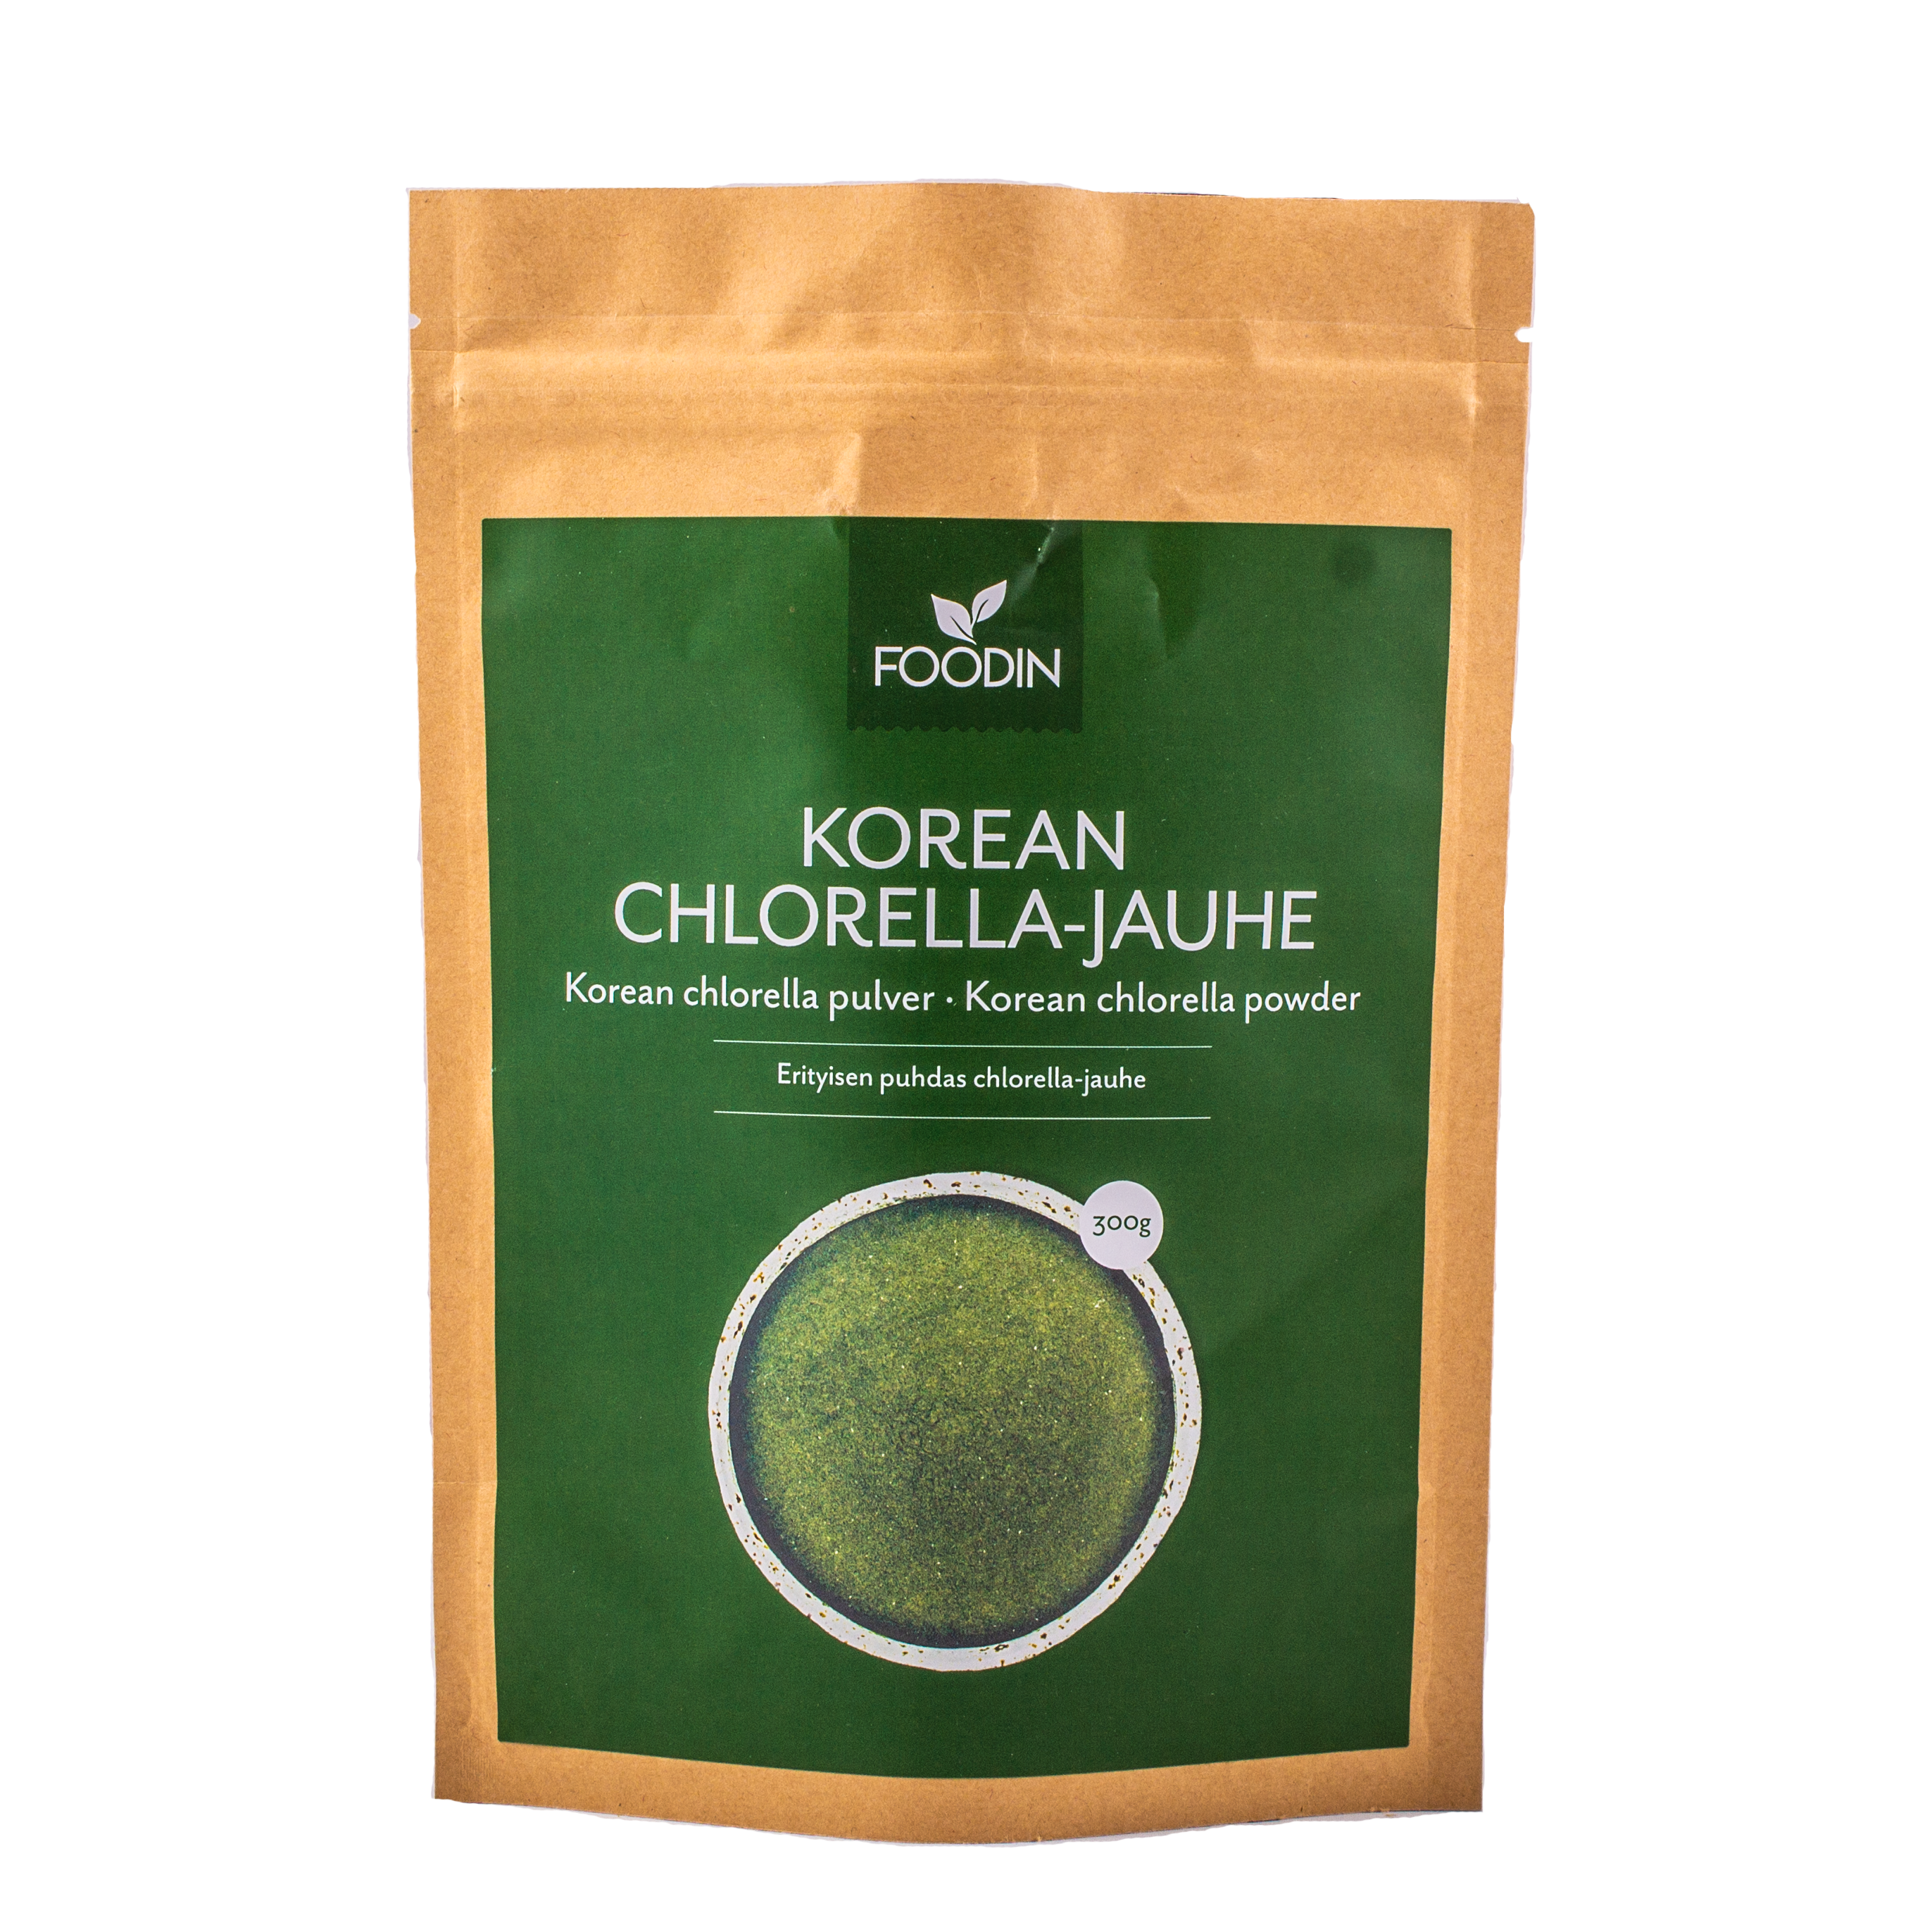 Korean Chlorella-jauhe, 300g